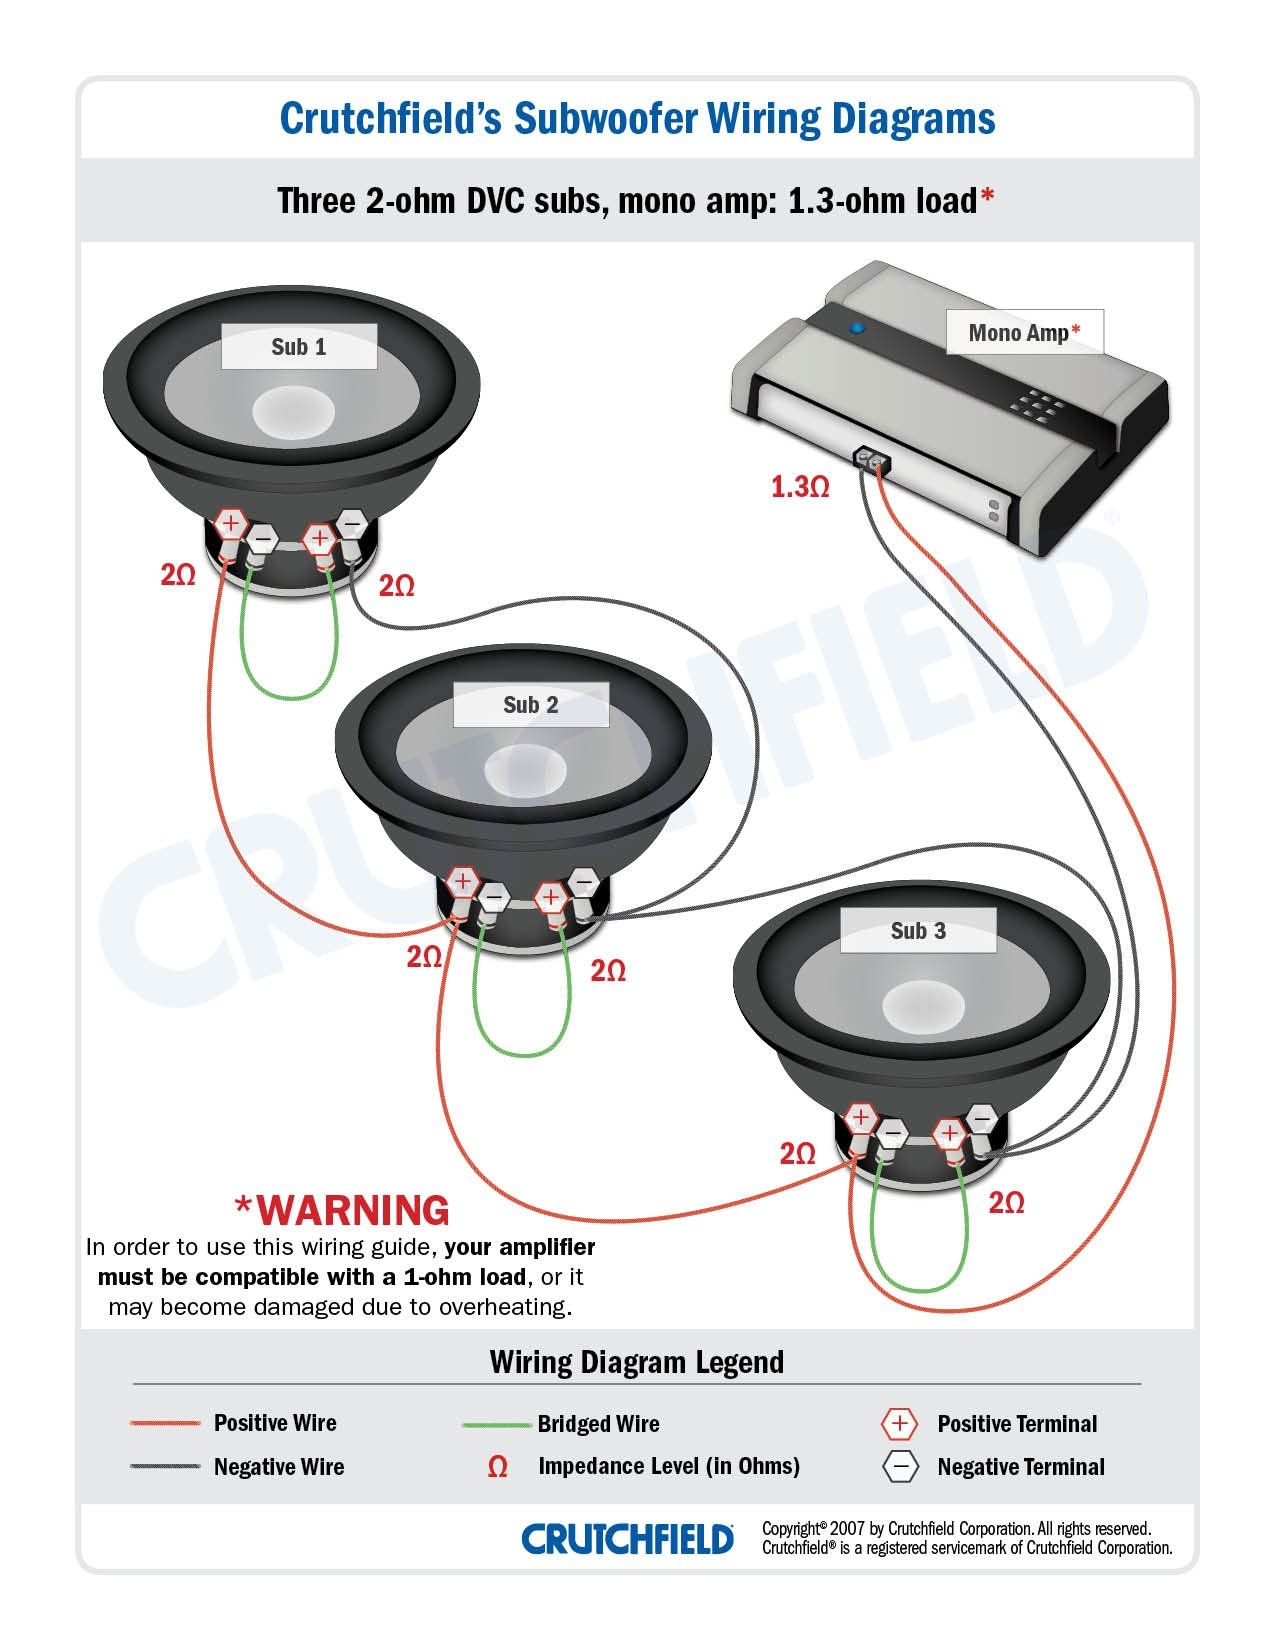 3 DVC 2 ohm mono low imp how to match subwoofers and amplifiers boston subsat 6 wiring diagram at crackthecode.co